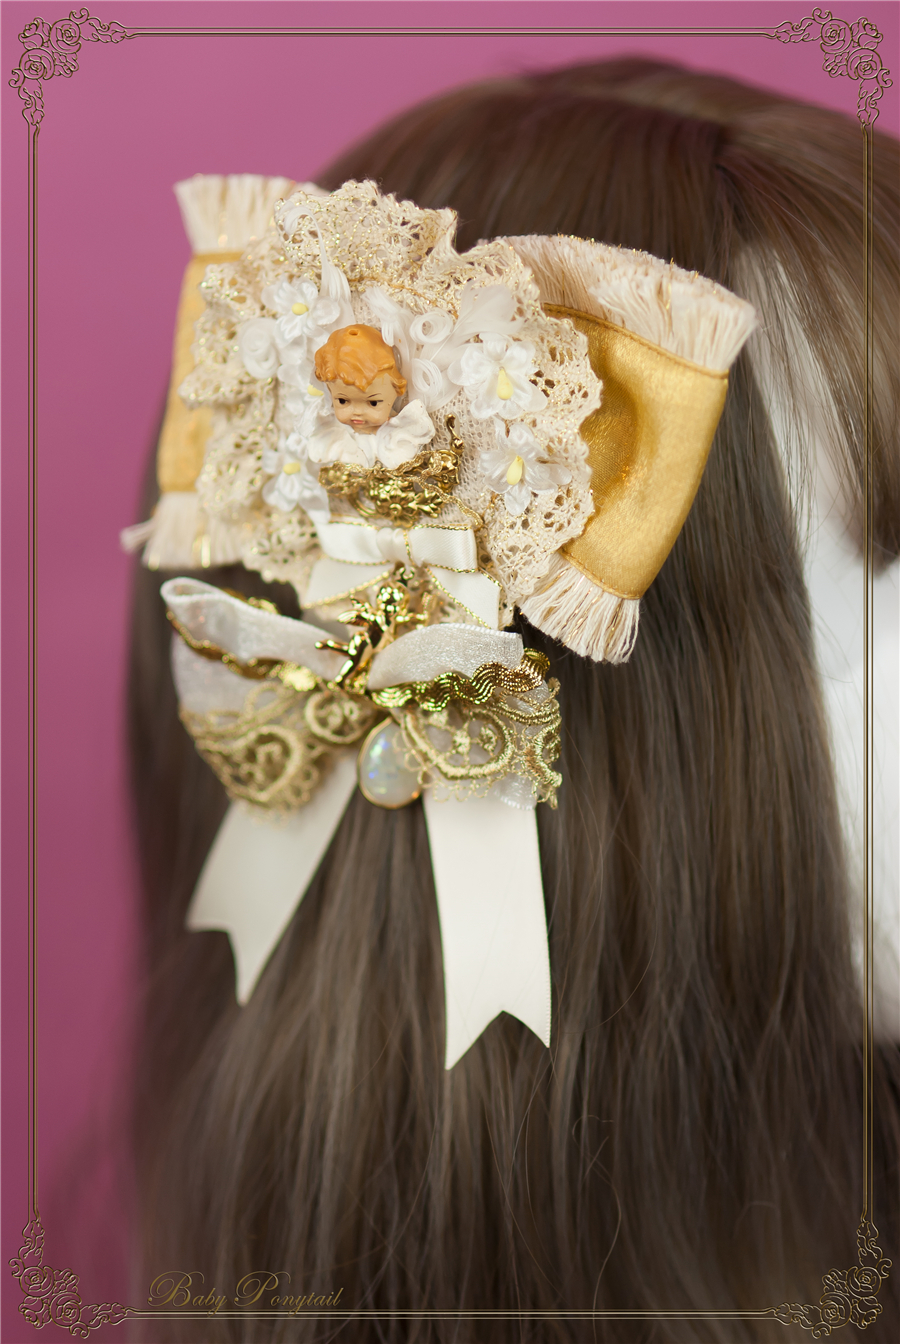 Baby Ponytail_Stock photo_Circus Princess_Angel Brooch_Yellow_ 01.jpg